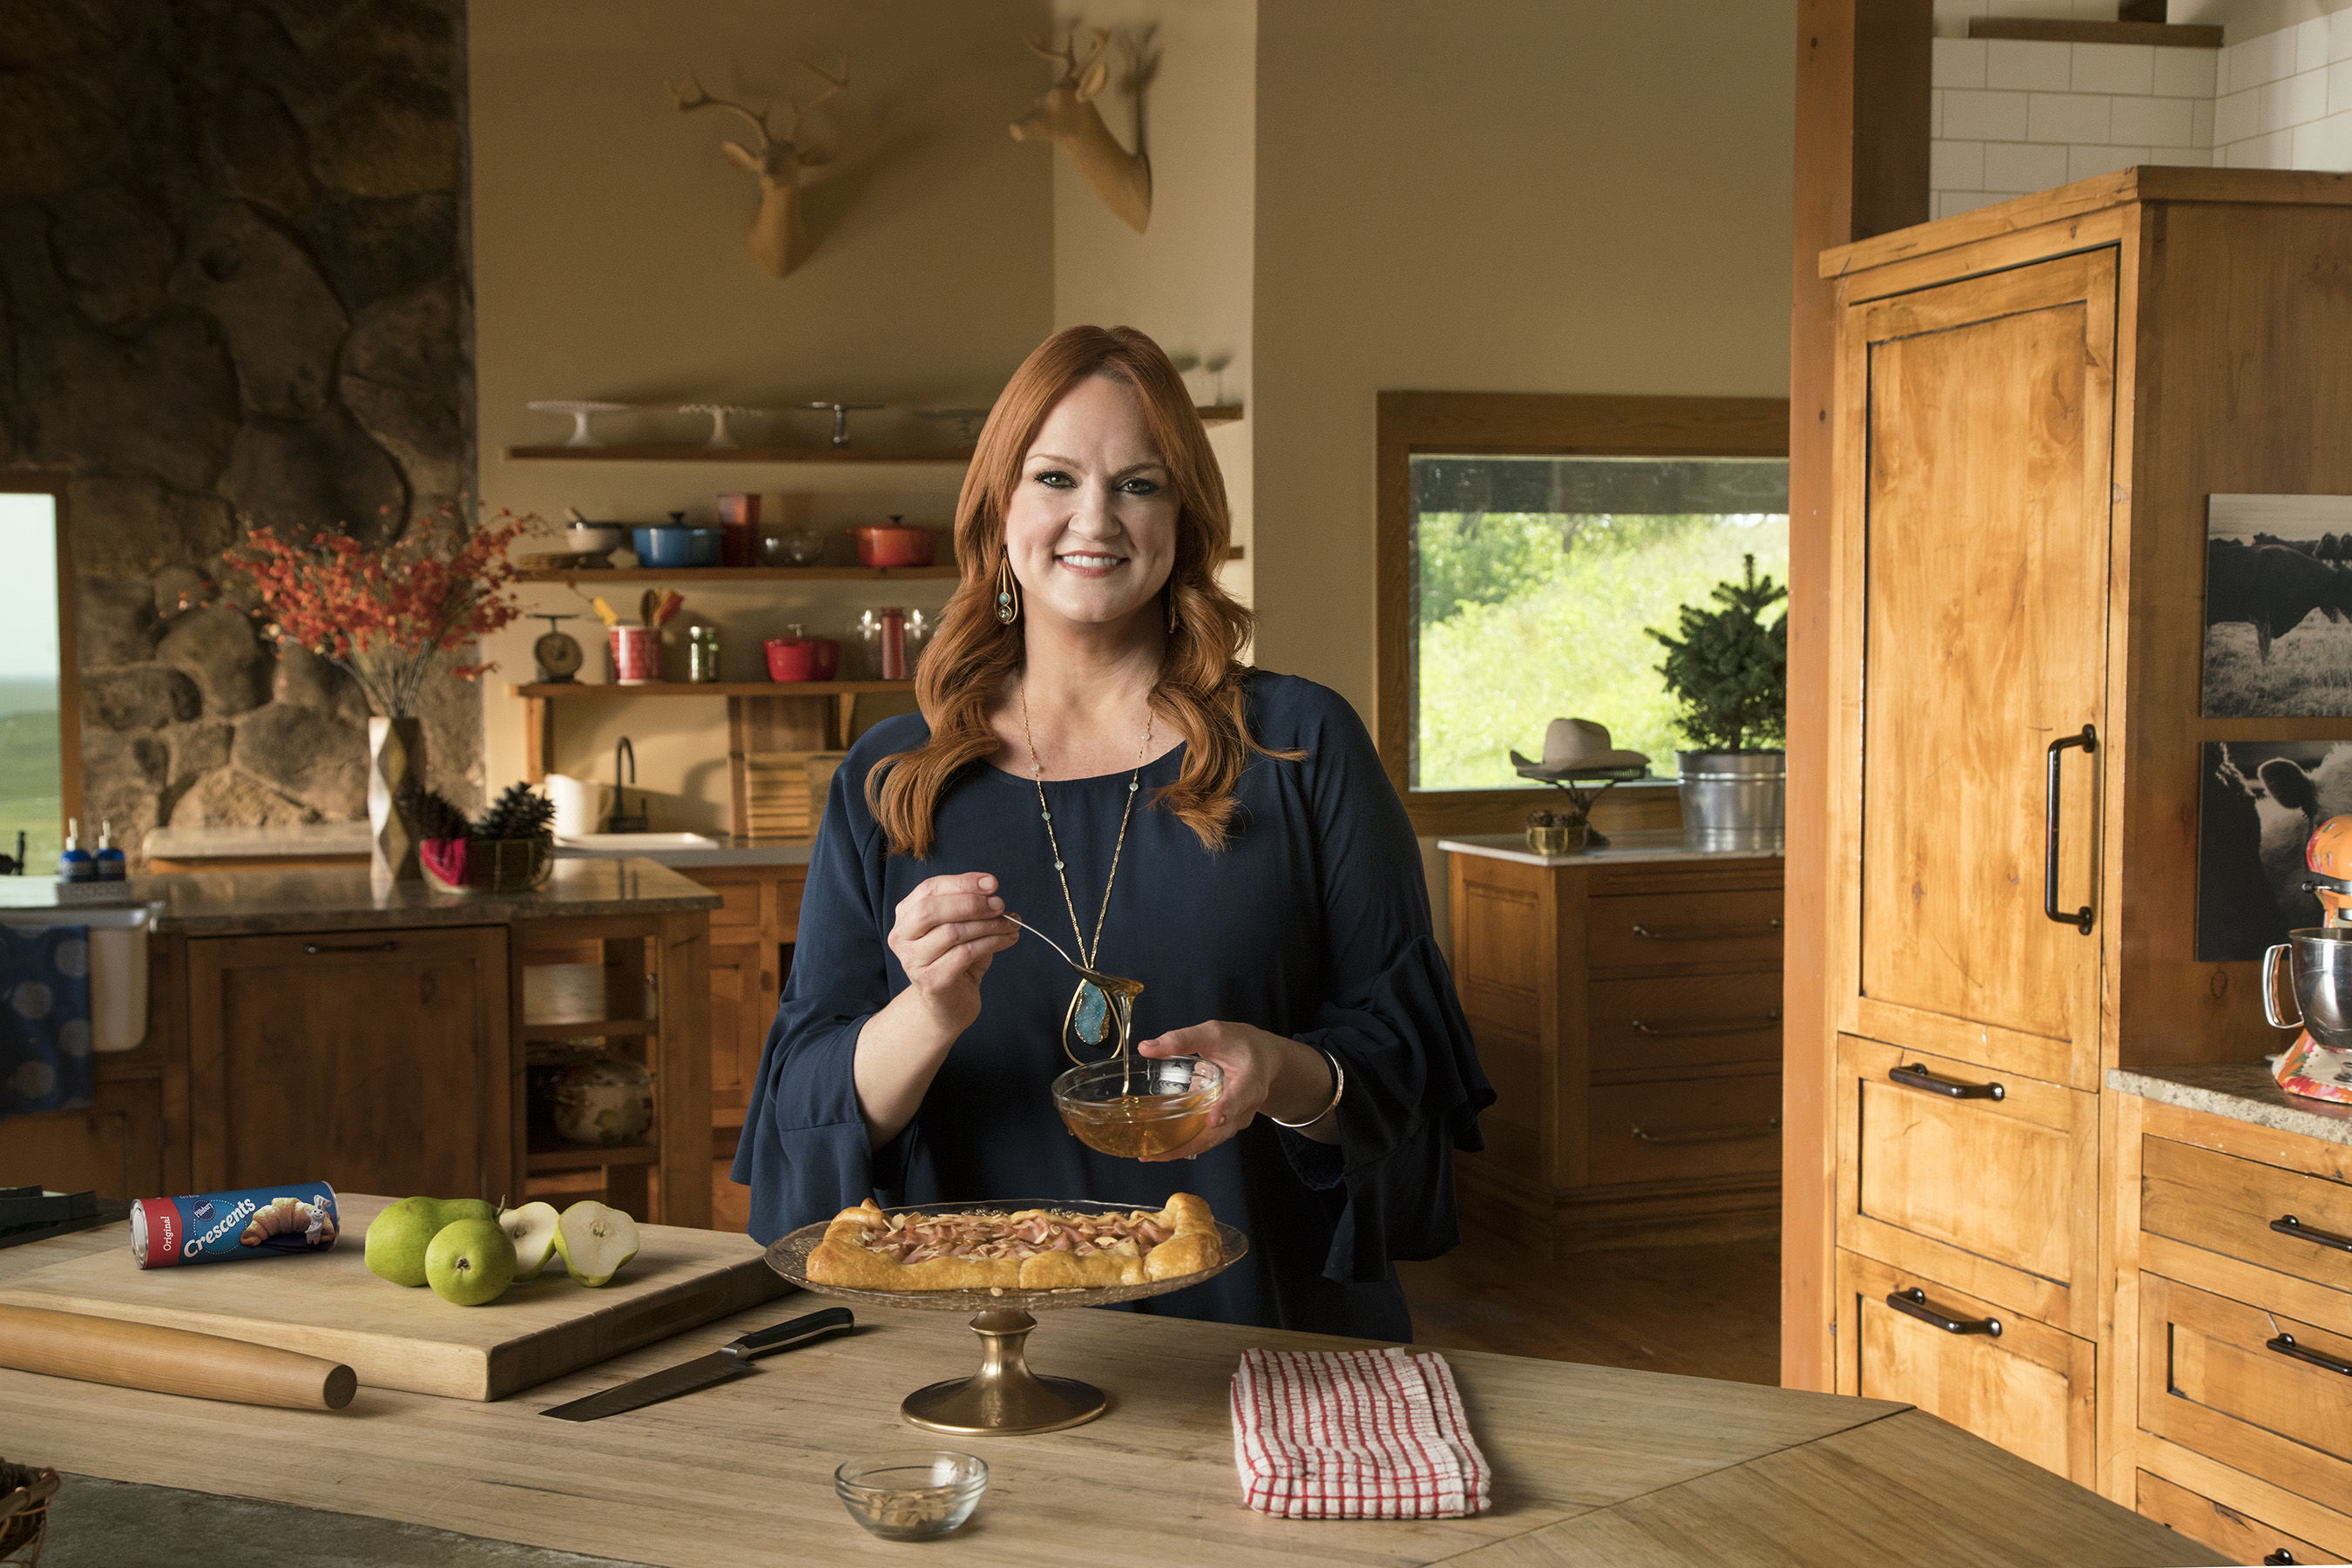 WATCH: Ree Drummond on the Future of 'The Pioneer Woman' Show